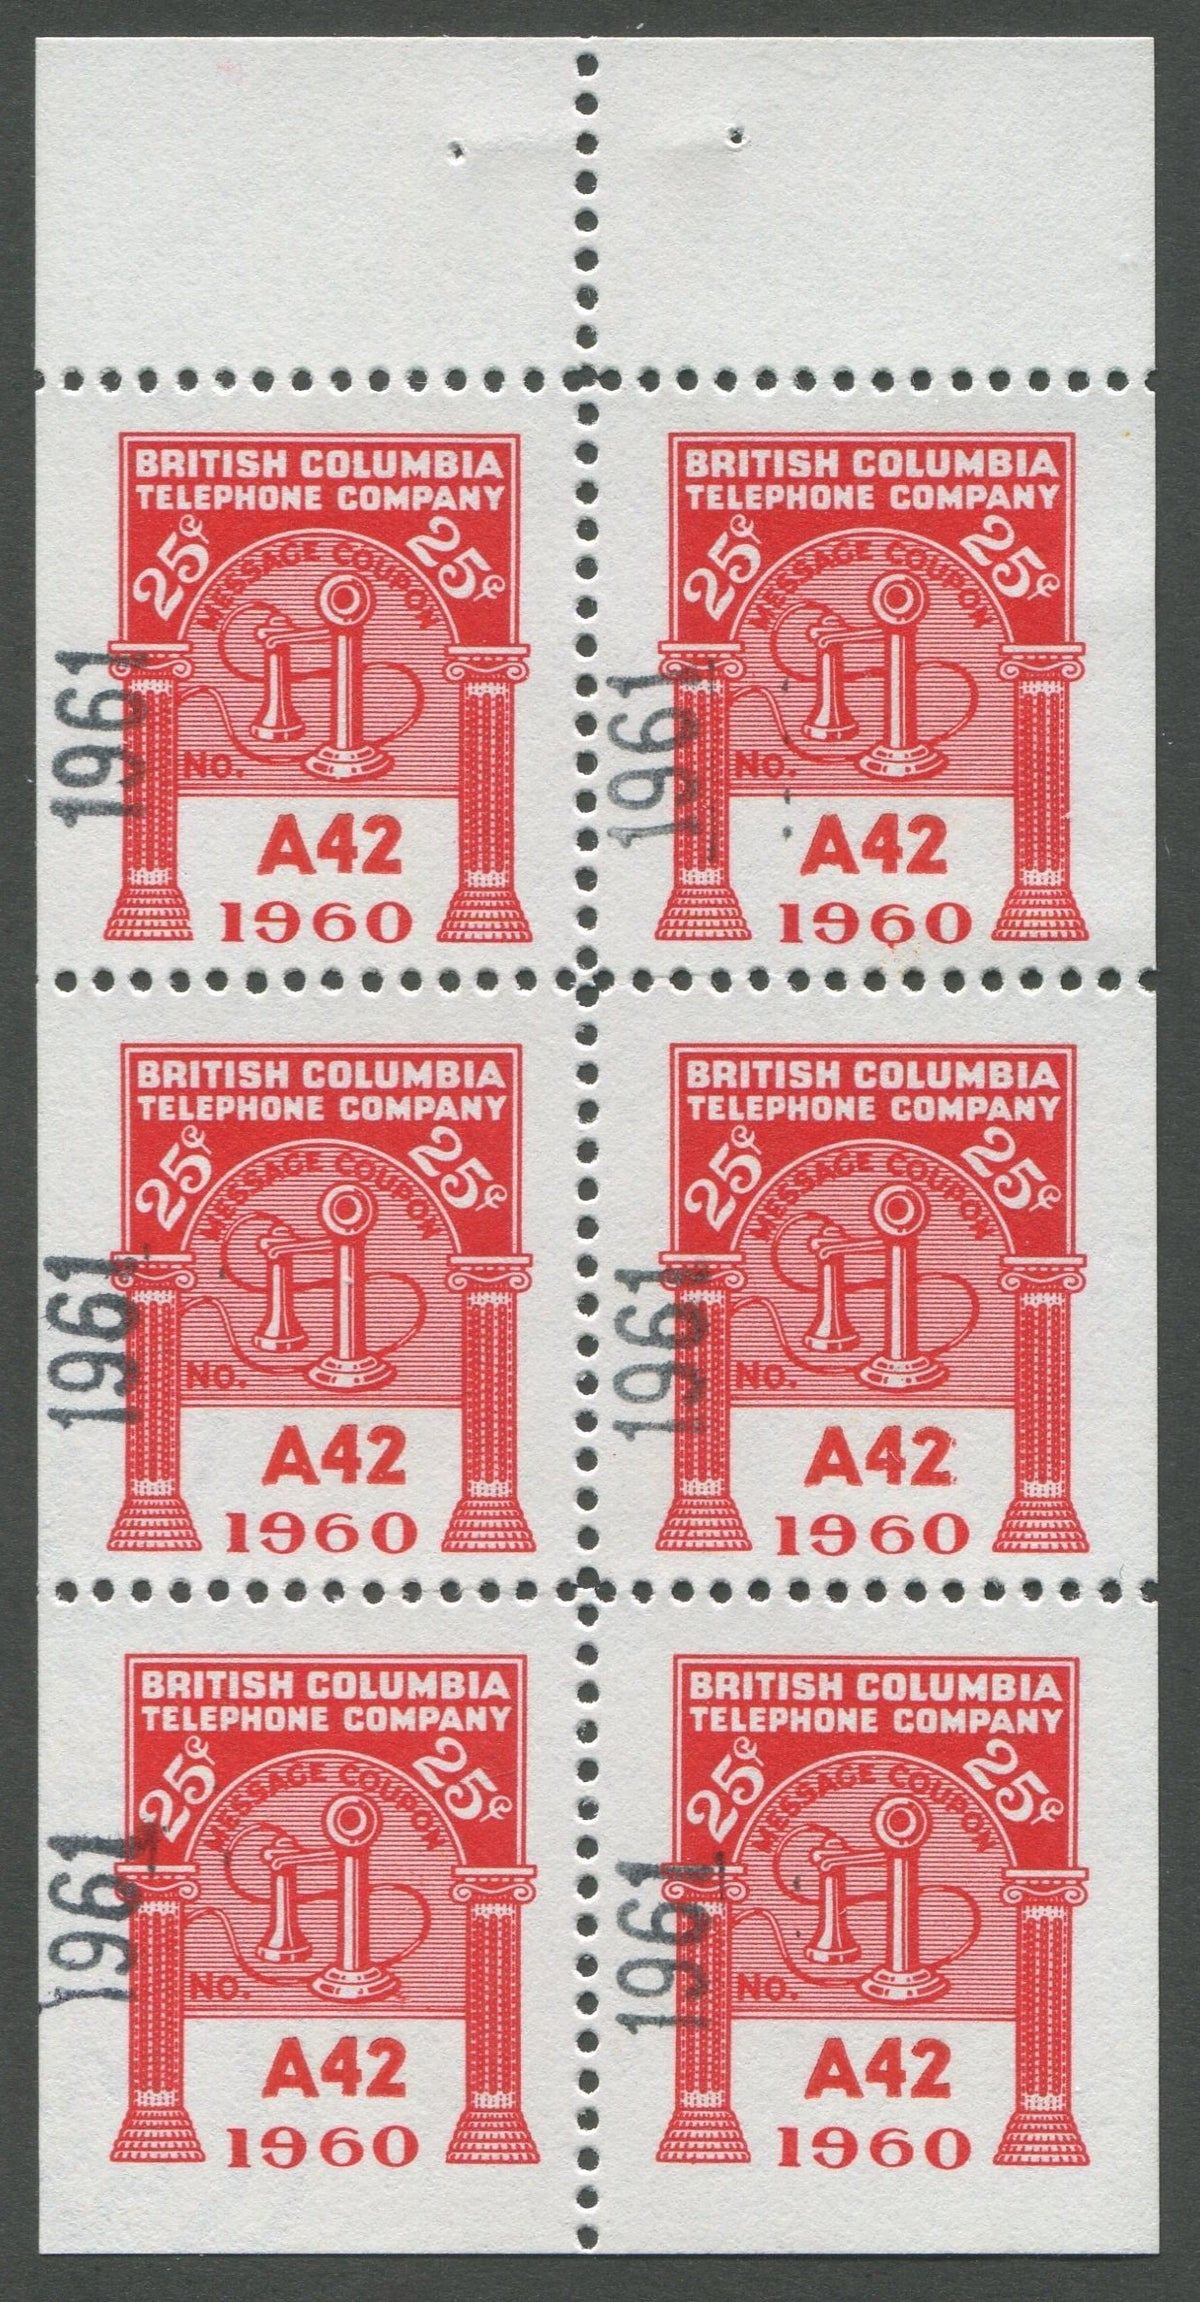 0292BC1708 - BCT194 - Mint Booklet Pane, Watermarked